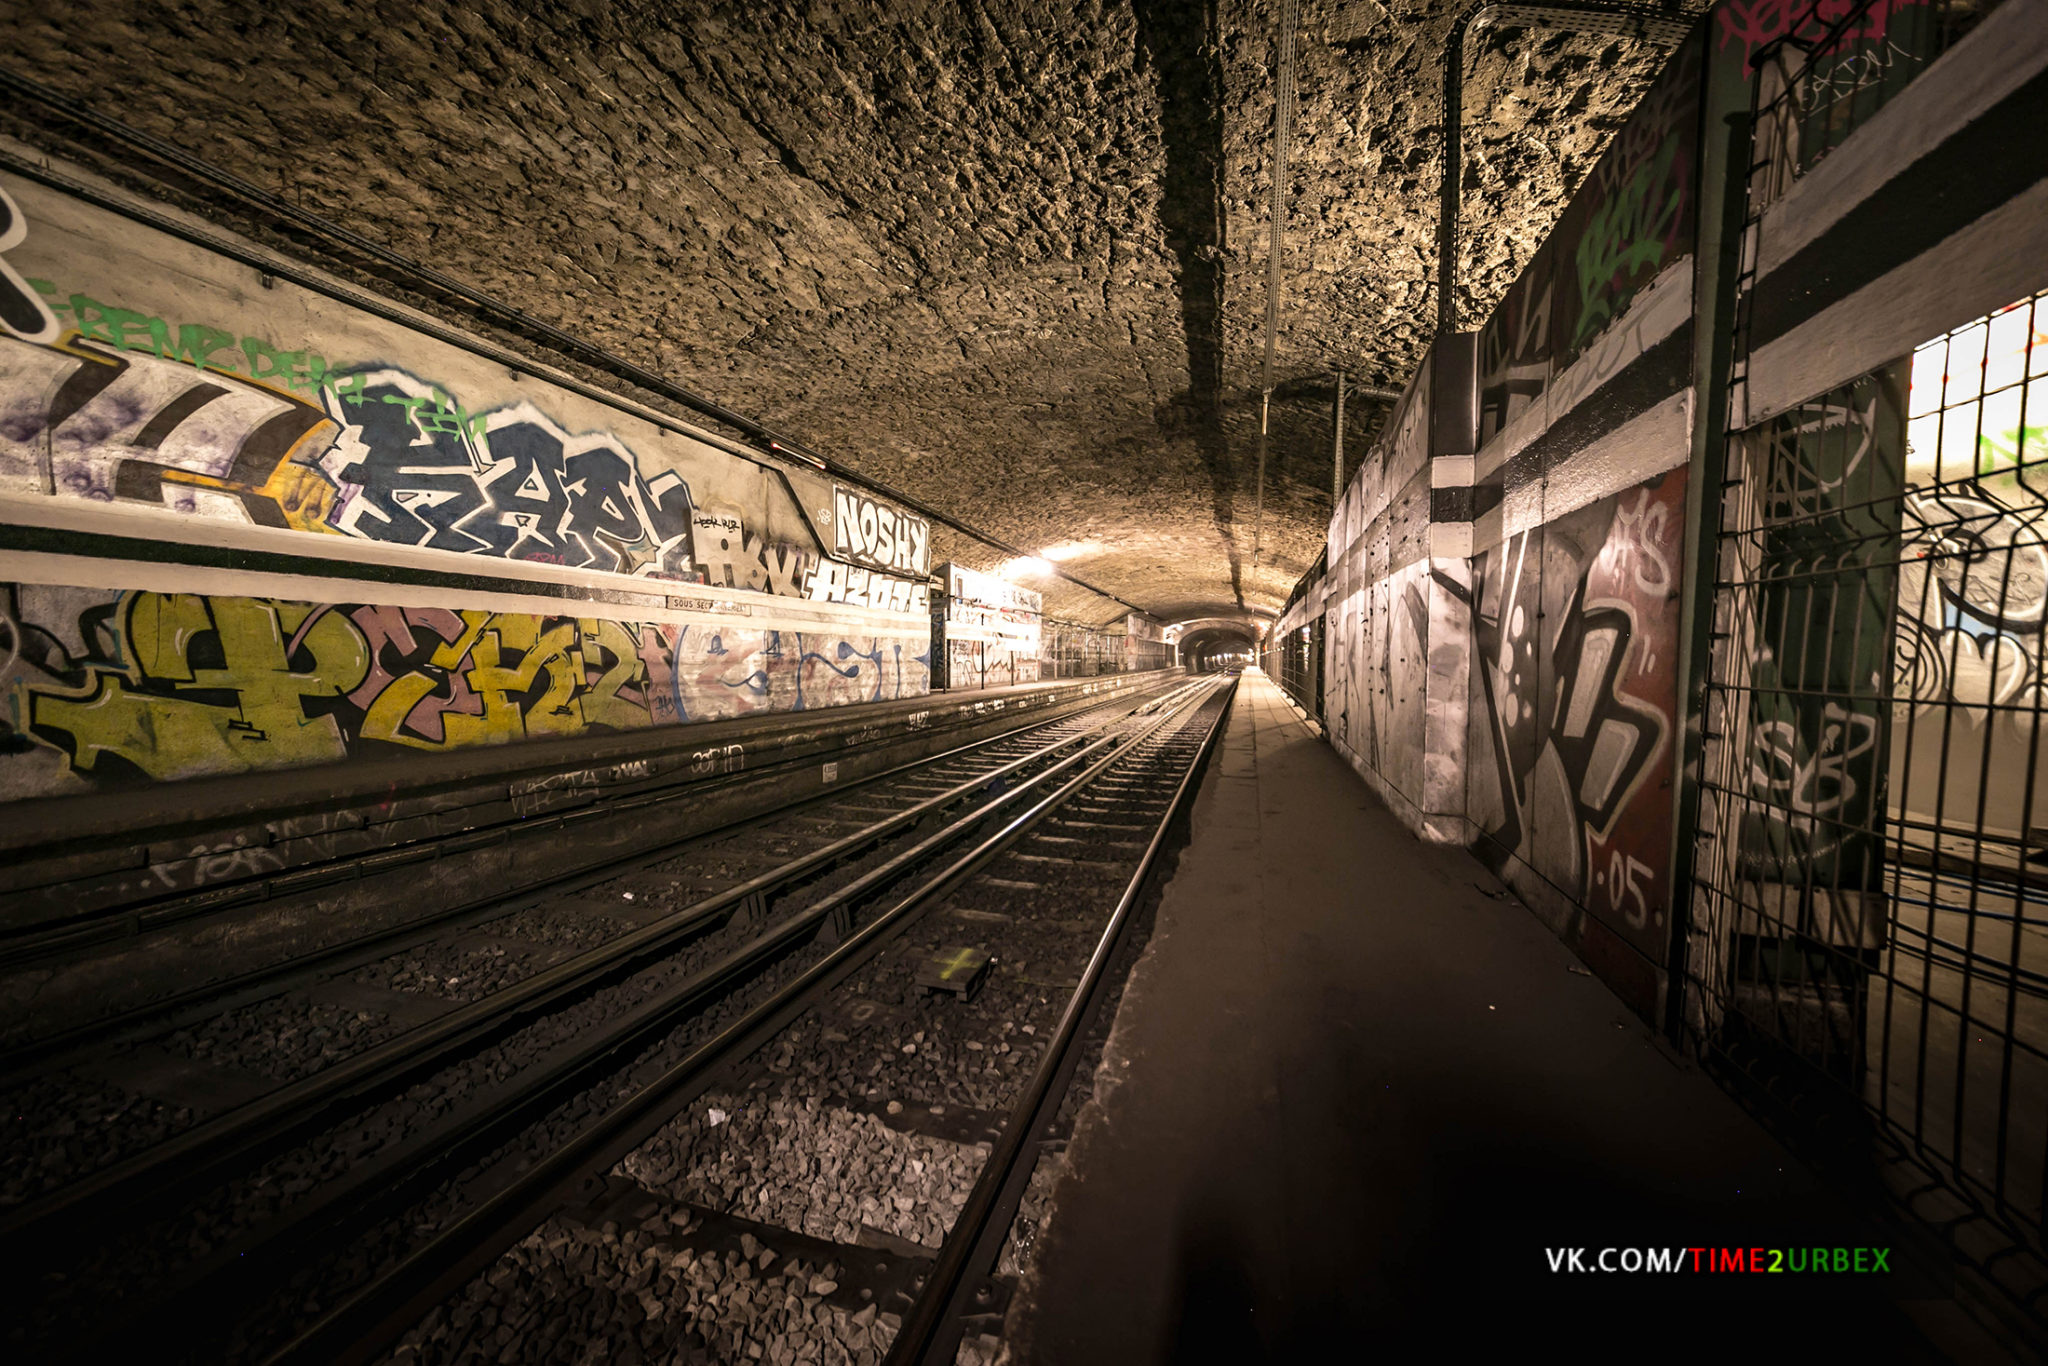 31-1 7 GHOST STATIONS OF THE PARIS METRO AND HOW TO GET INTO THE ILLEGALLY + UNUSUAL TUNNELS + RER